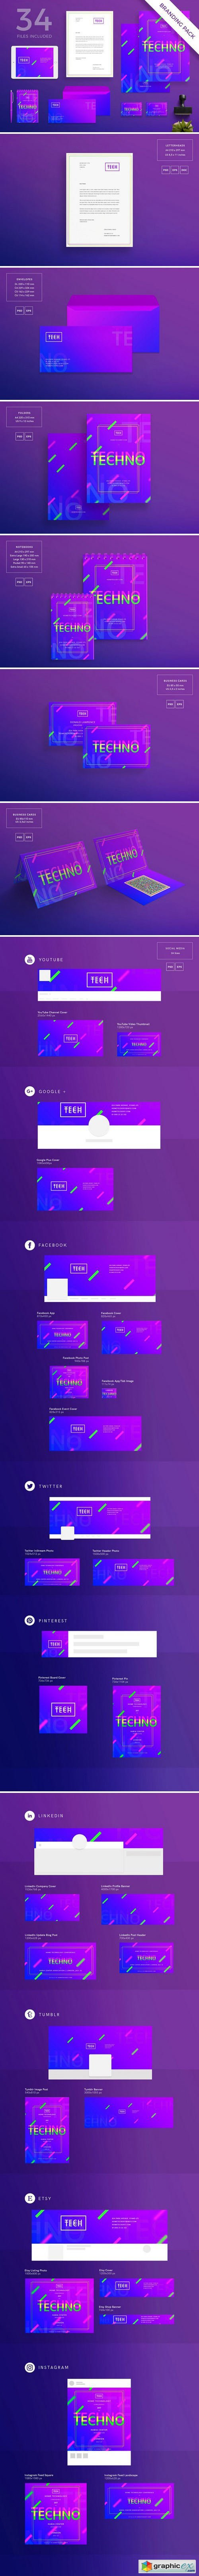 Branding Pack | Home Tech